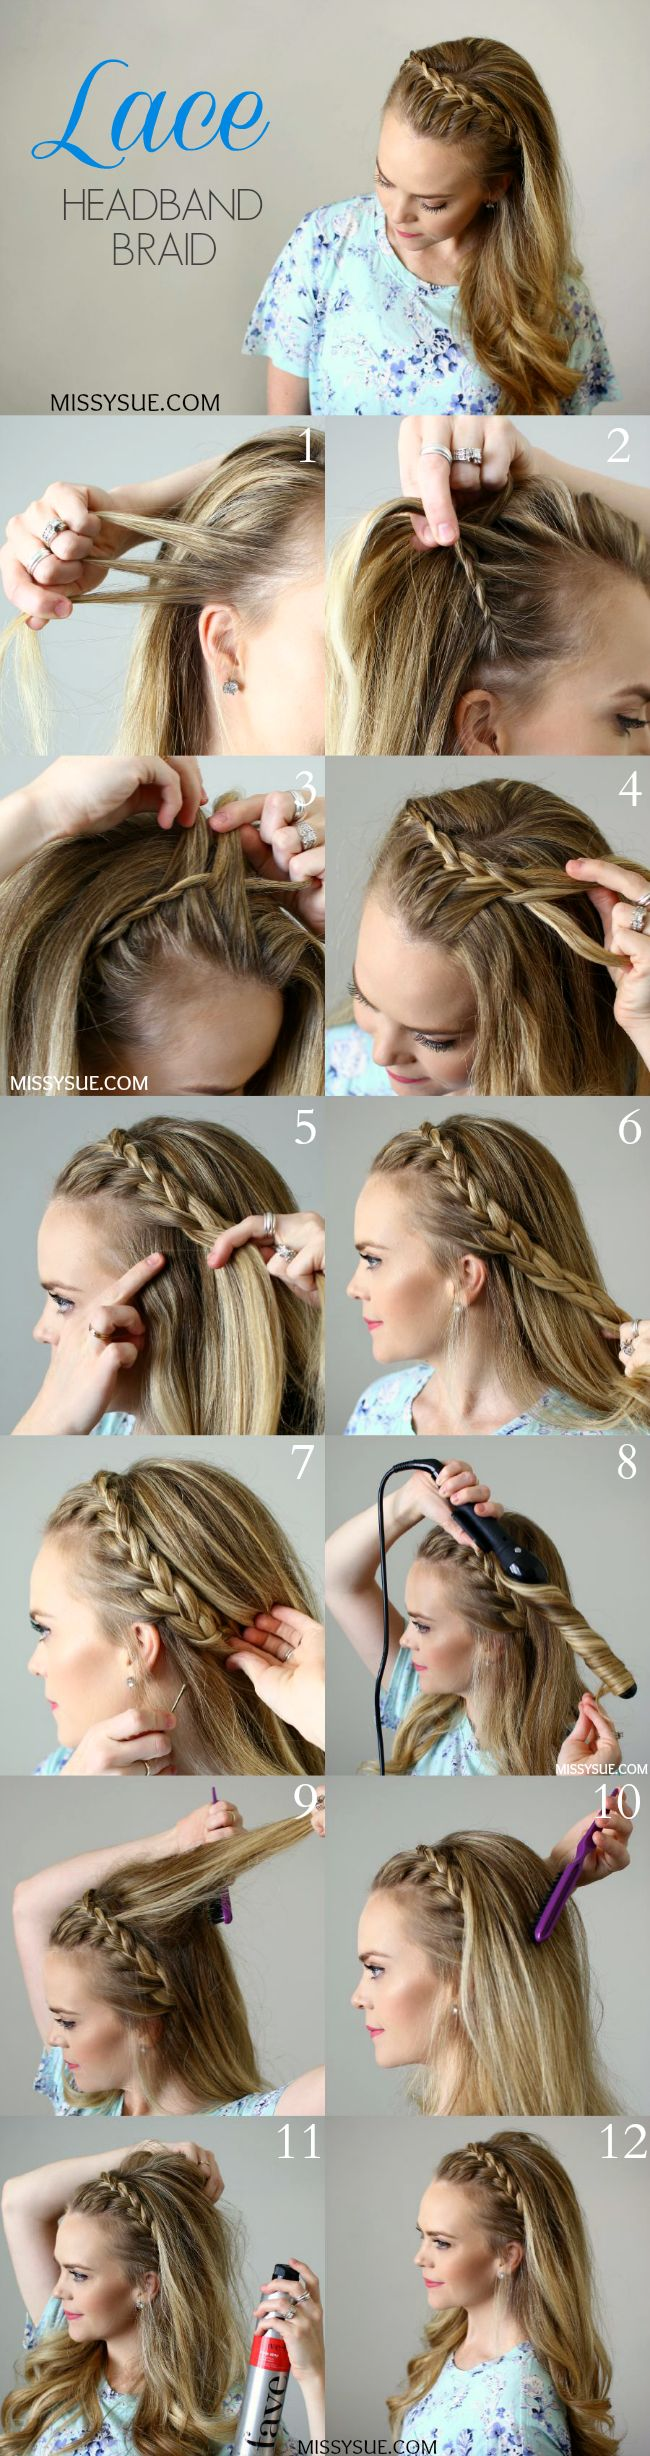 Lace Headband Braid